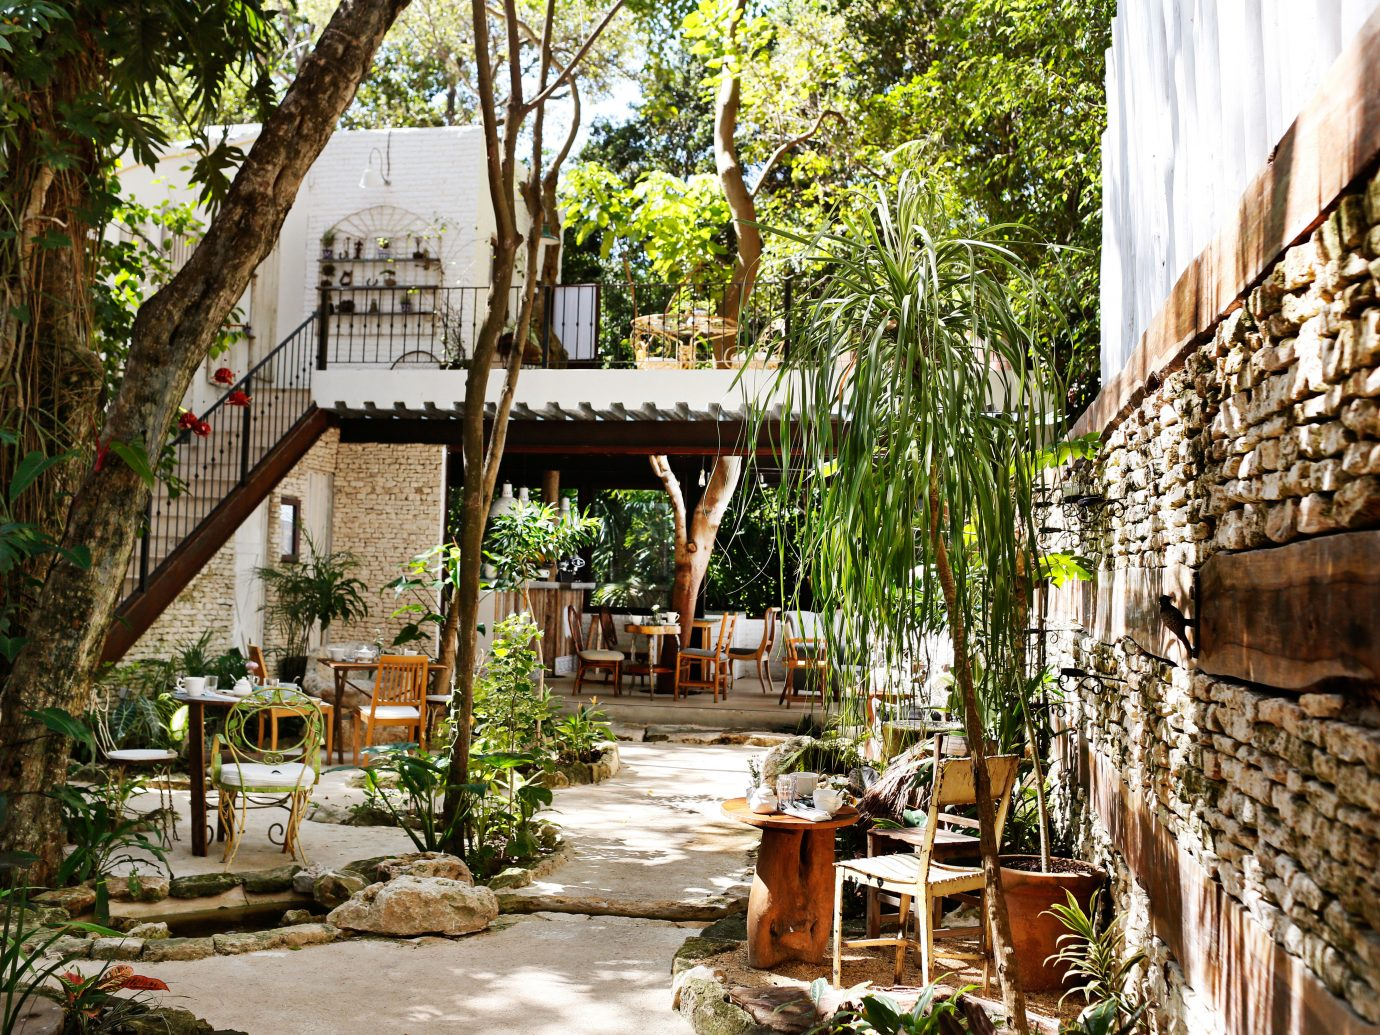 Boutique Budget Dining Drink Eat Garden Grounds Hotels Romance Rustic Trip Ideas Tropical tree outdoor Resort vacation Village tourism estate restaurant Courtyard cottage area stone furniture several